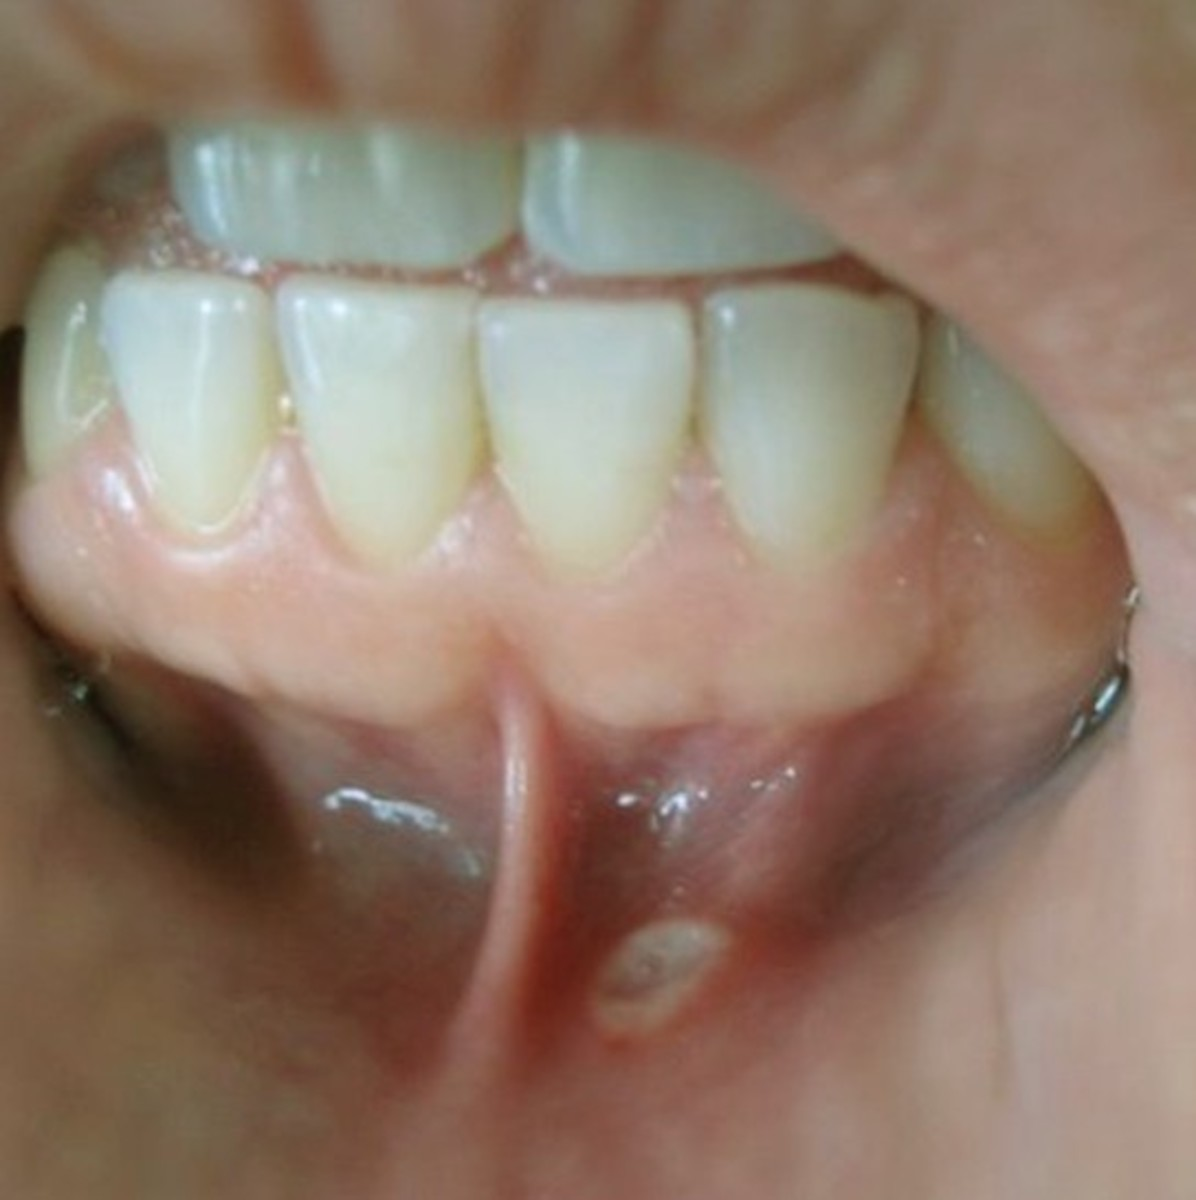 Canker Sores in Mouth - Pictures, Causes, Treatment, Home Remedies